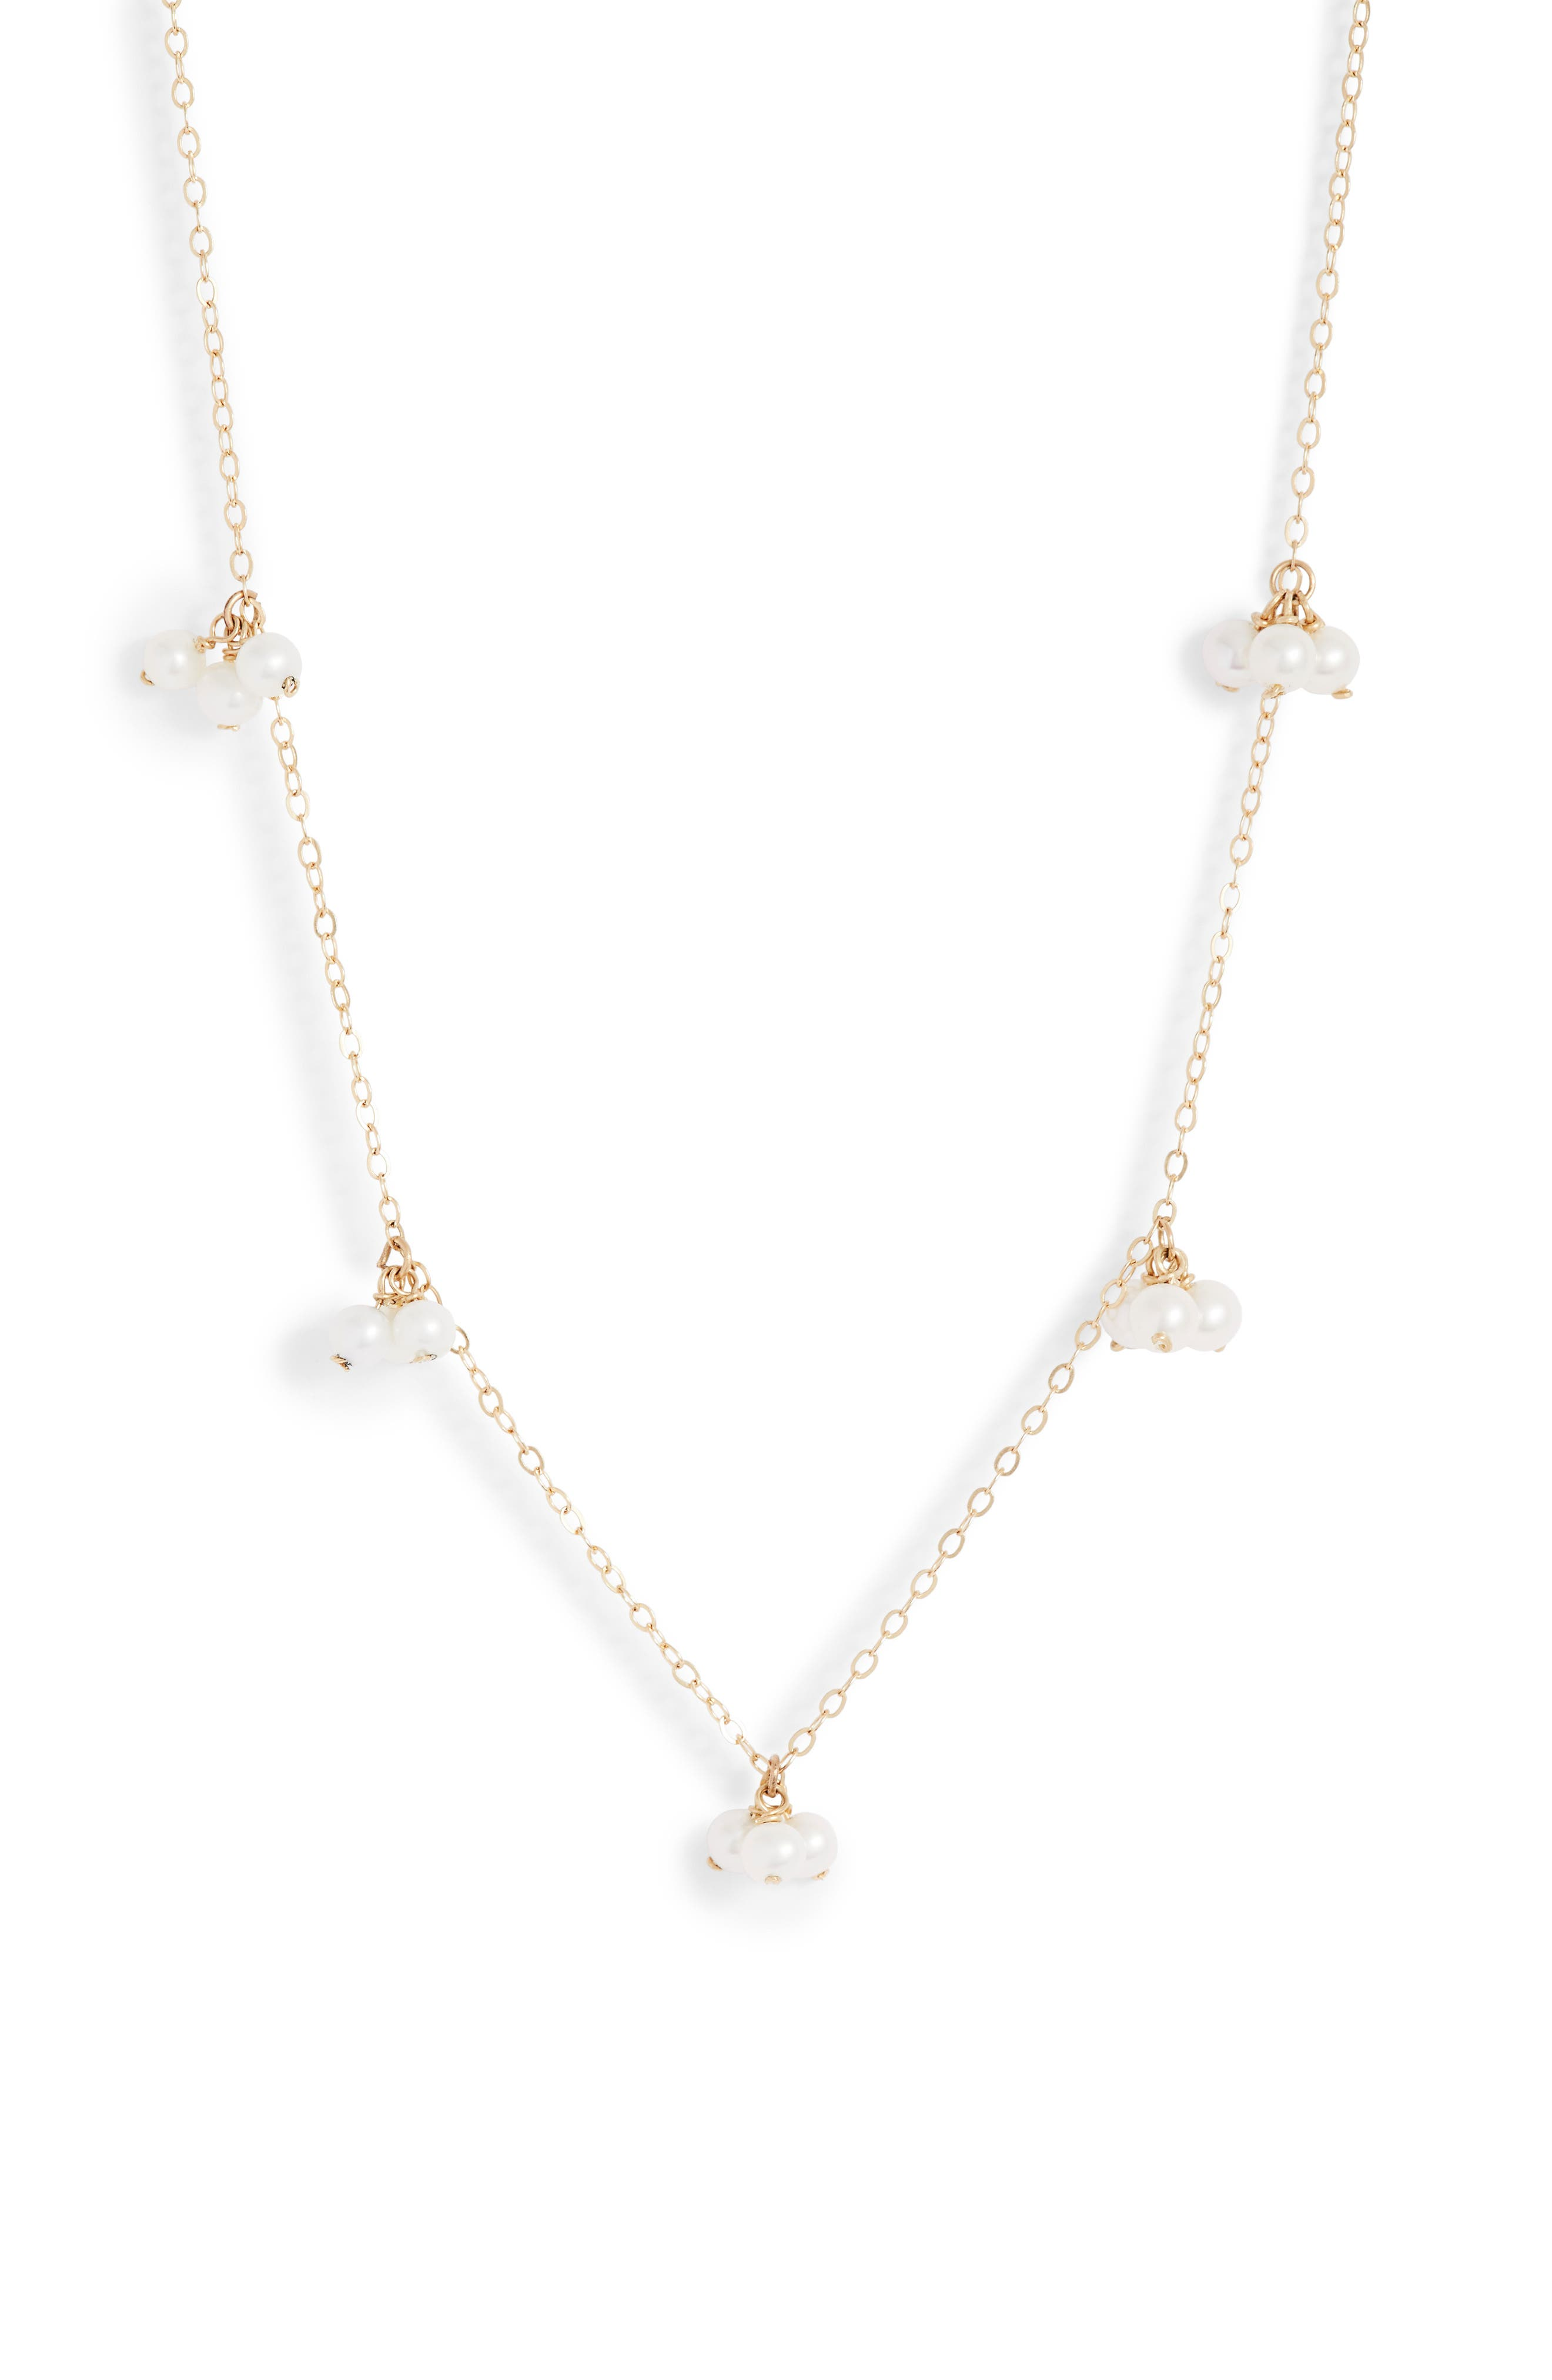 Baby Pearl Trio Gold Station Necklace,                         Main,                         color, YELLOW GOLD/ WHITE PEARL